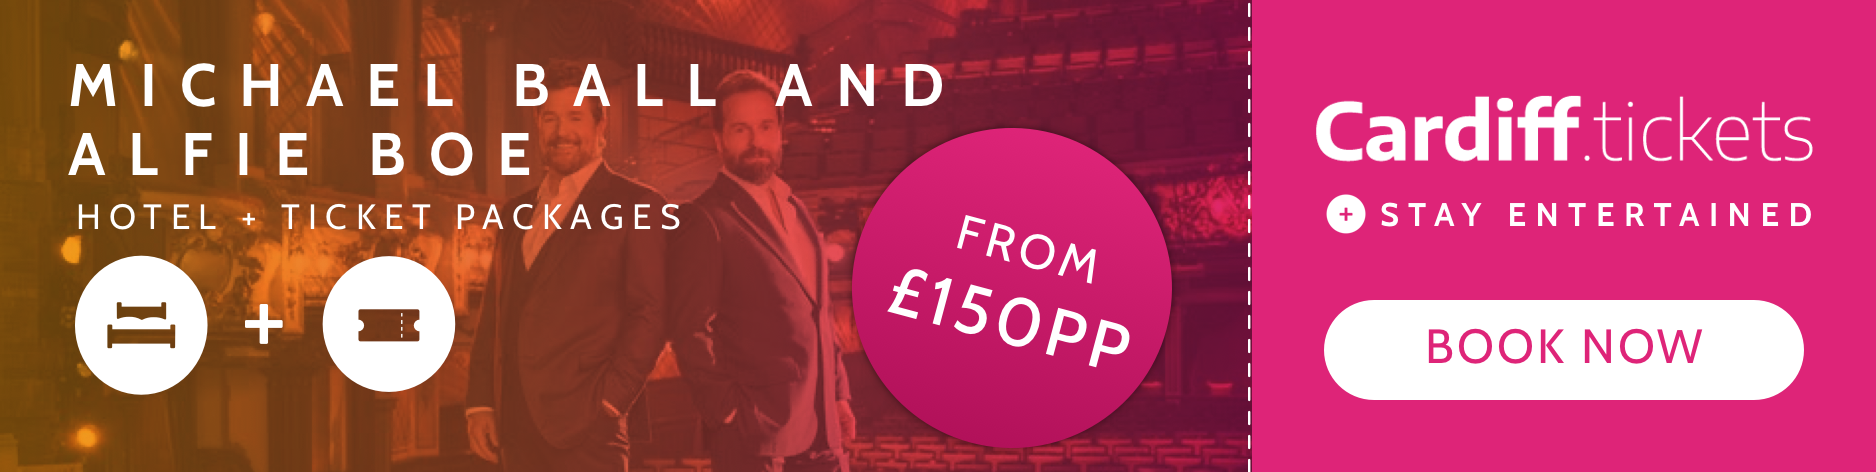 Michael Ball and Alfie Boe tickets and hotel package